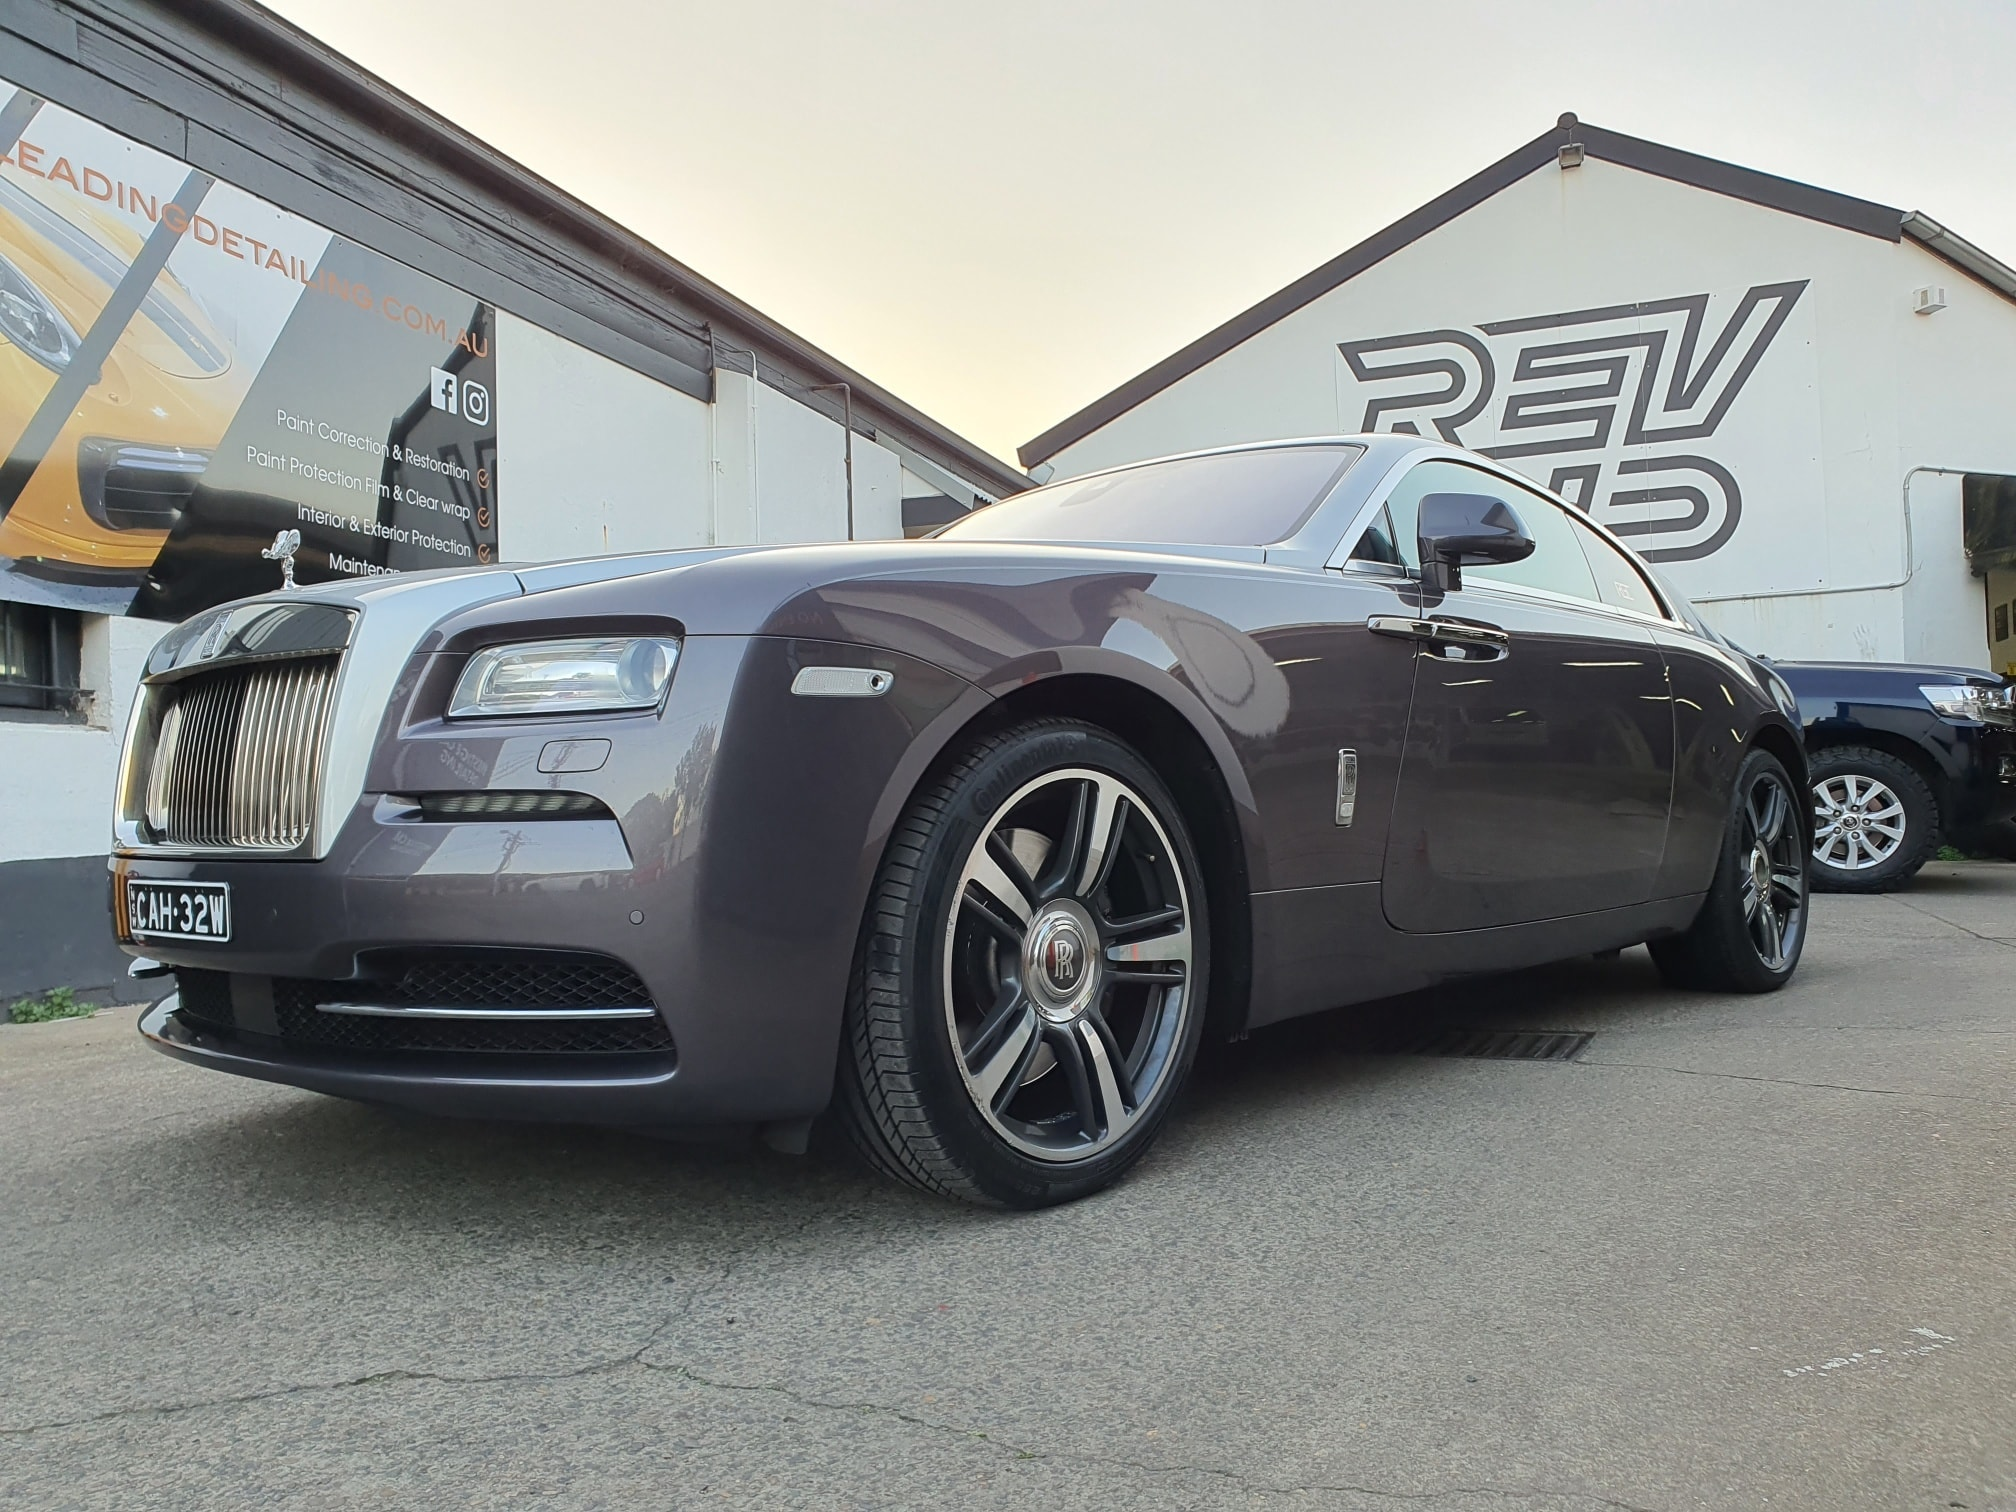 Rolls Royce paint protection film